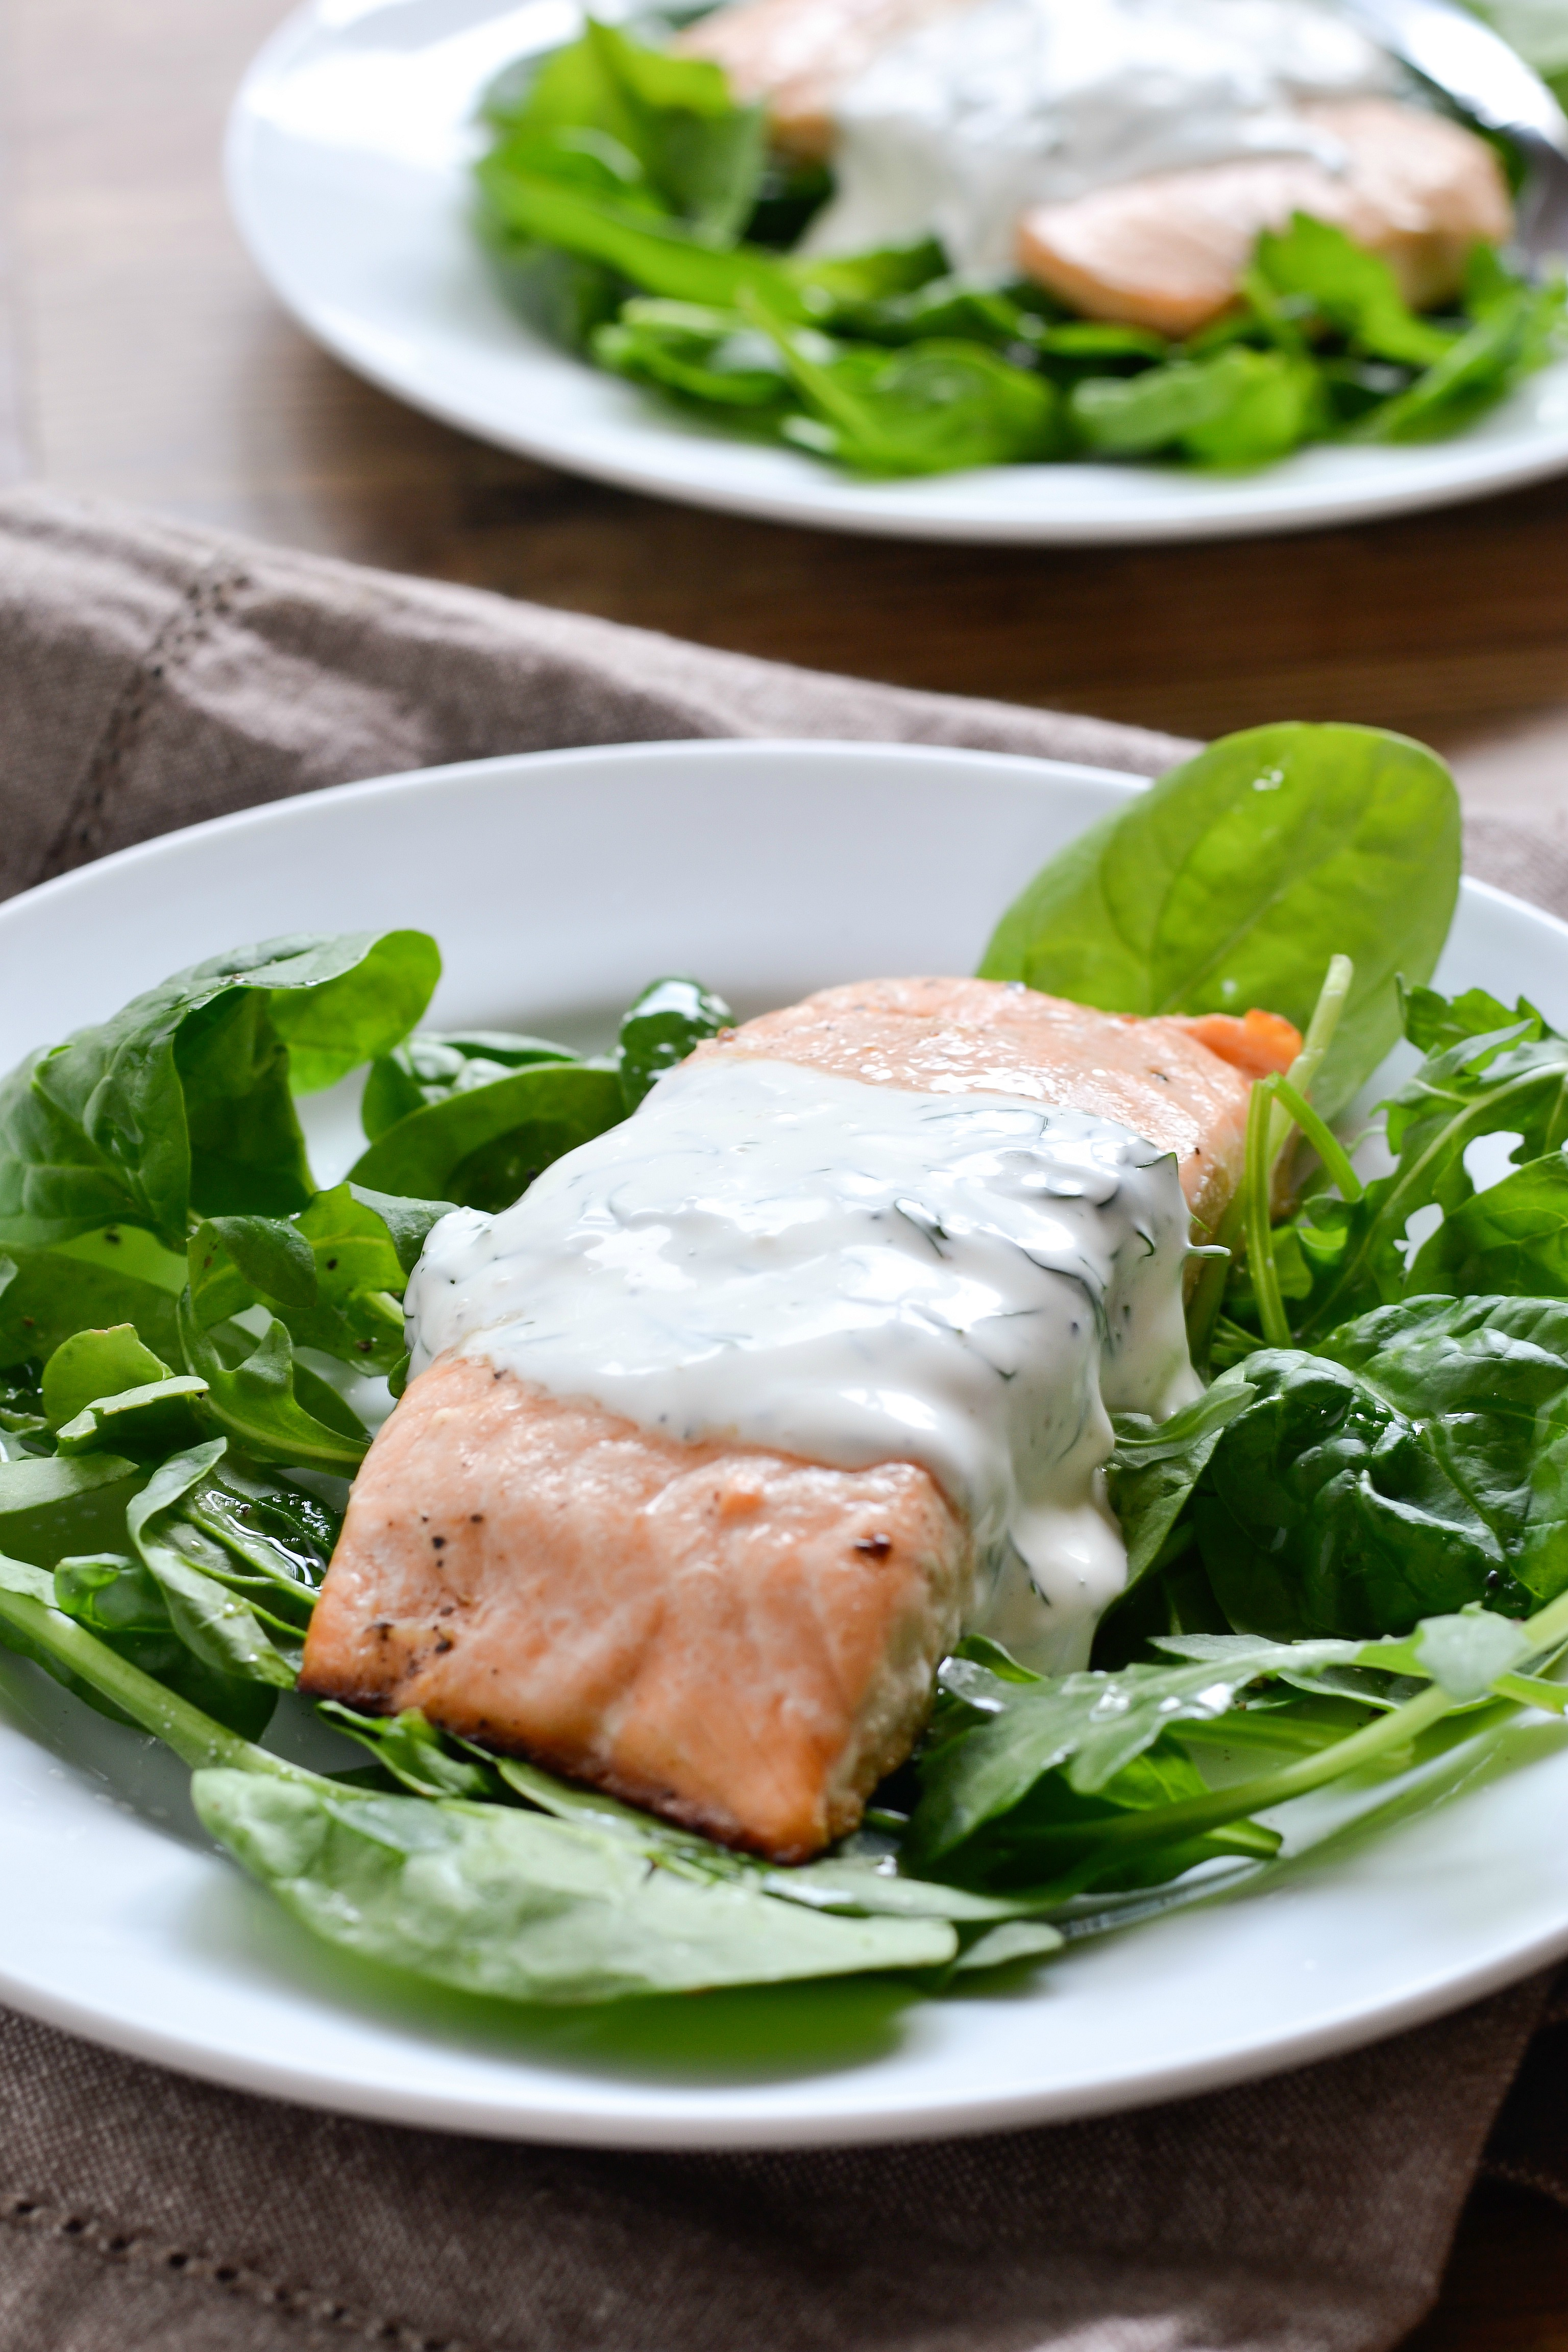 30 Minute Meal - Baked Lemon Pepper Salmon with Creamy Dill Sauce ...